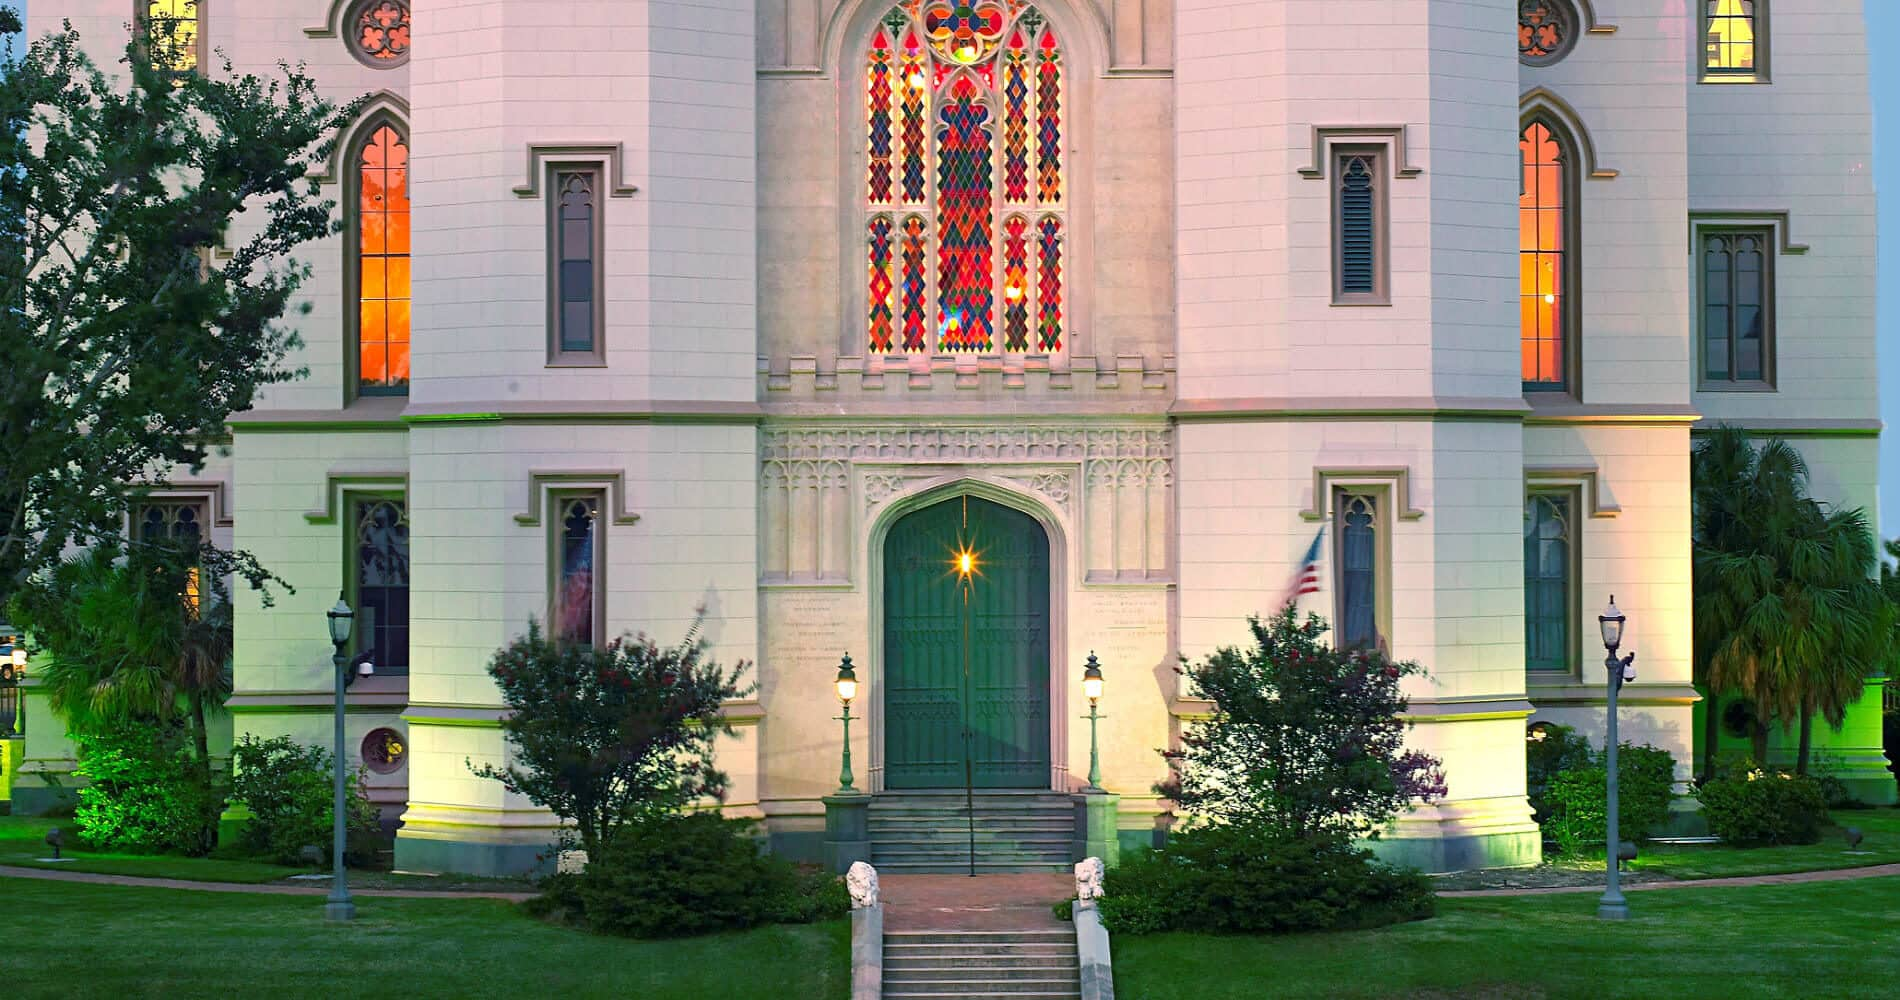 Old courthouse with white walls, stained-glass windows, blue sky, green grass with stairs leading to green front door